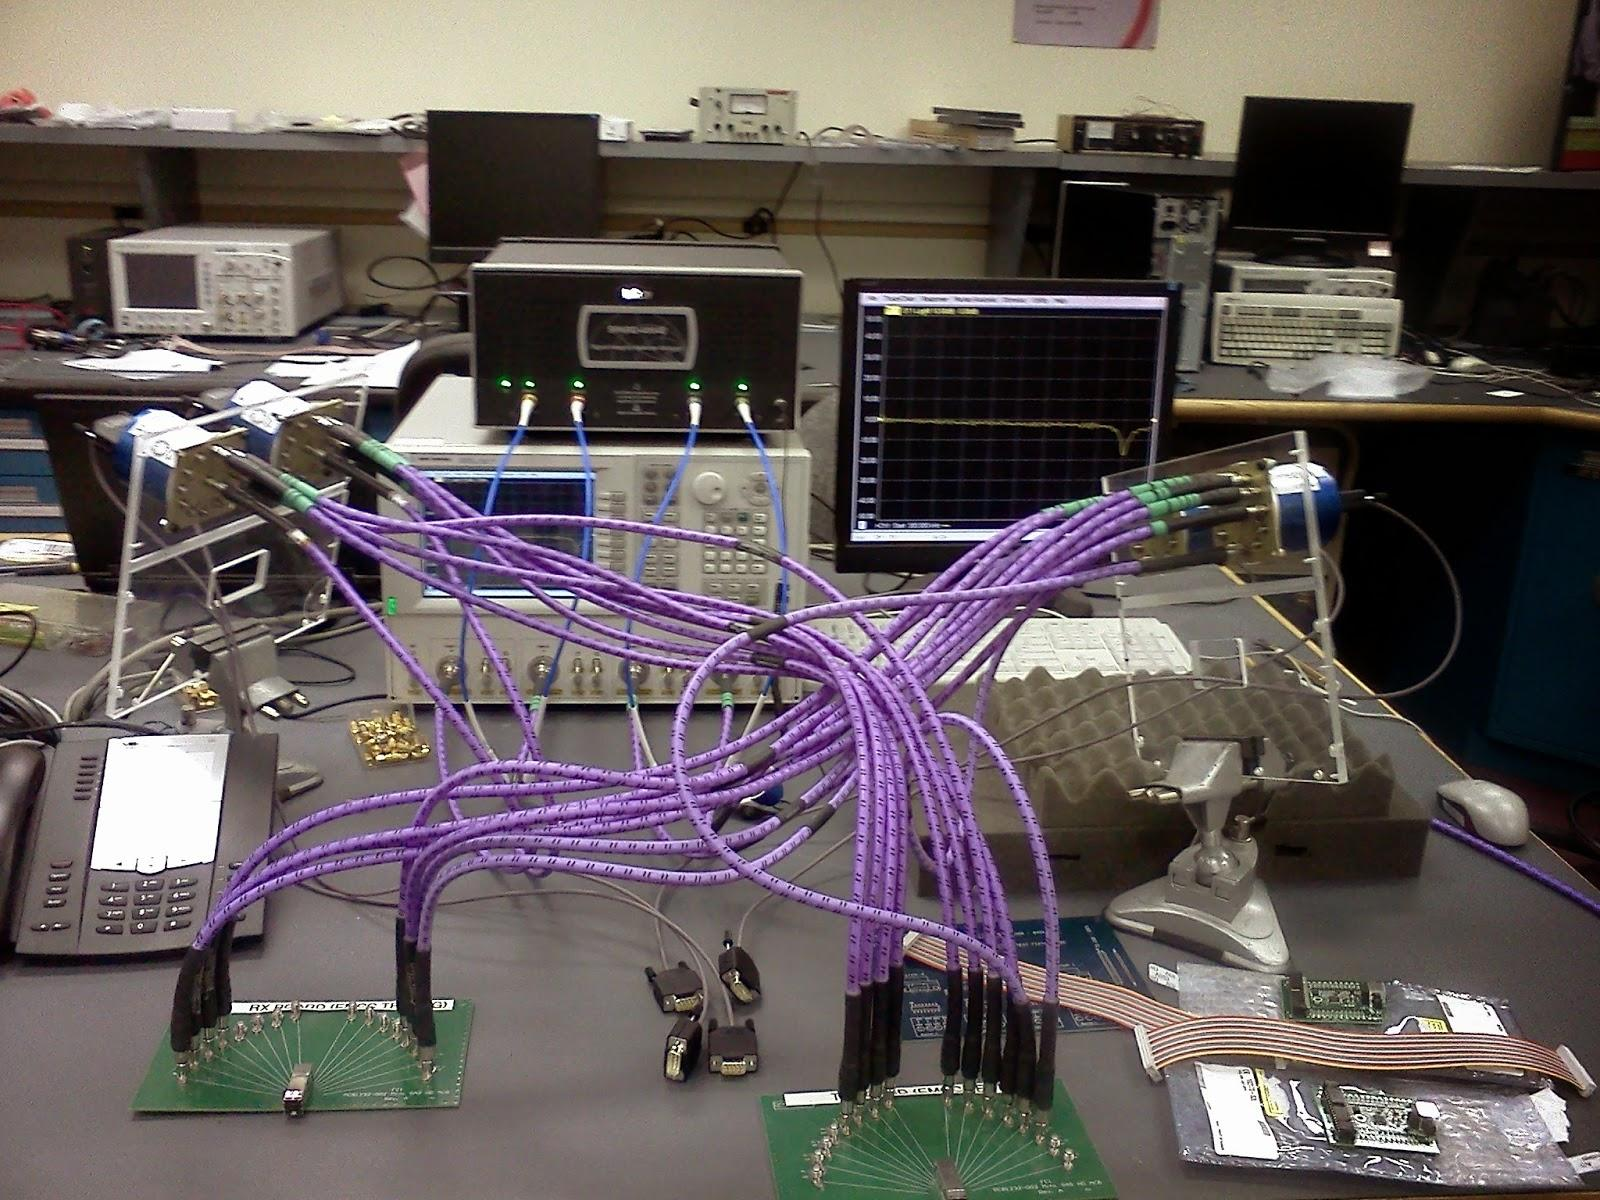 Various lab devices in the background with partially loaded SP12T Radiall switches mounted to a plexiglass frame in the foreground.